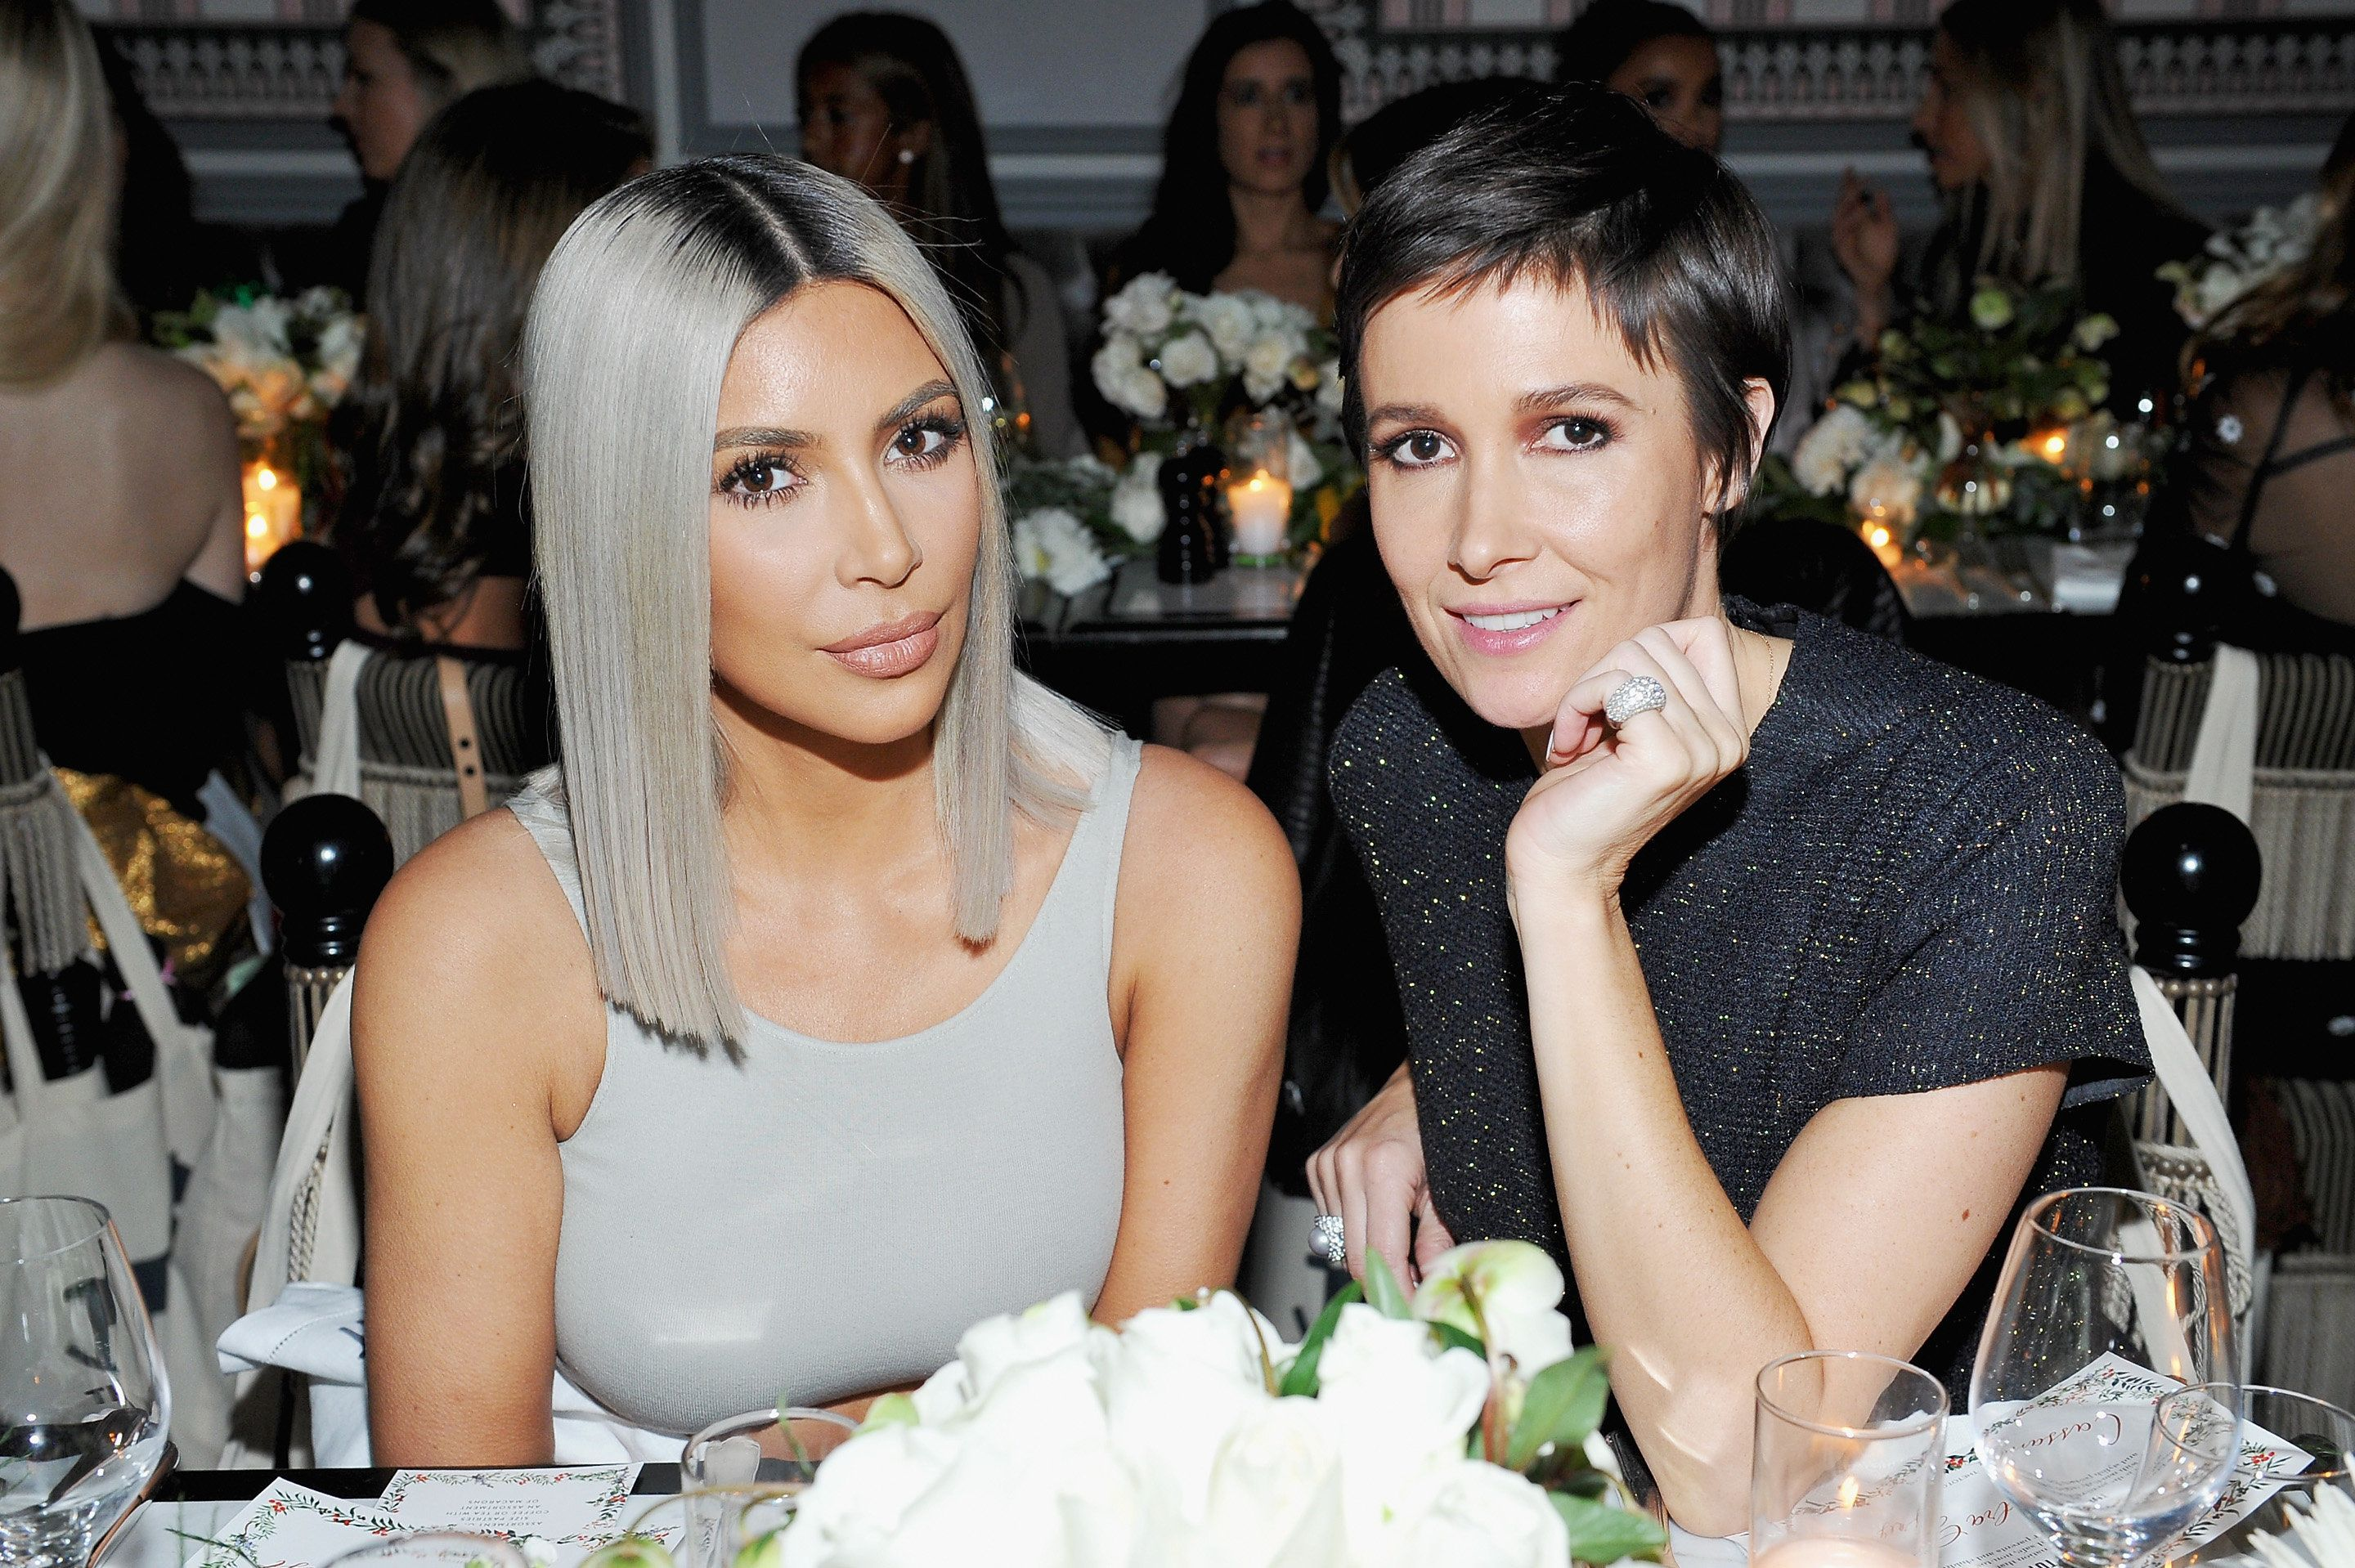 LOS ANGELES, CA - DECEMBER 04:  Kim Kardashian West (L) and Cassandra Grey attend The Tot holiday pop-up celebration at Laduree at the Grove on December 4, 2017 in Los Angeles, California.  (Photo by Donato Sardella/Getty Images for The Tot)